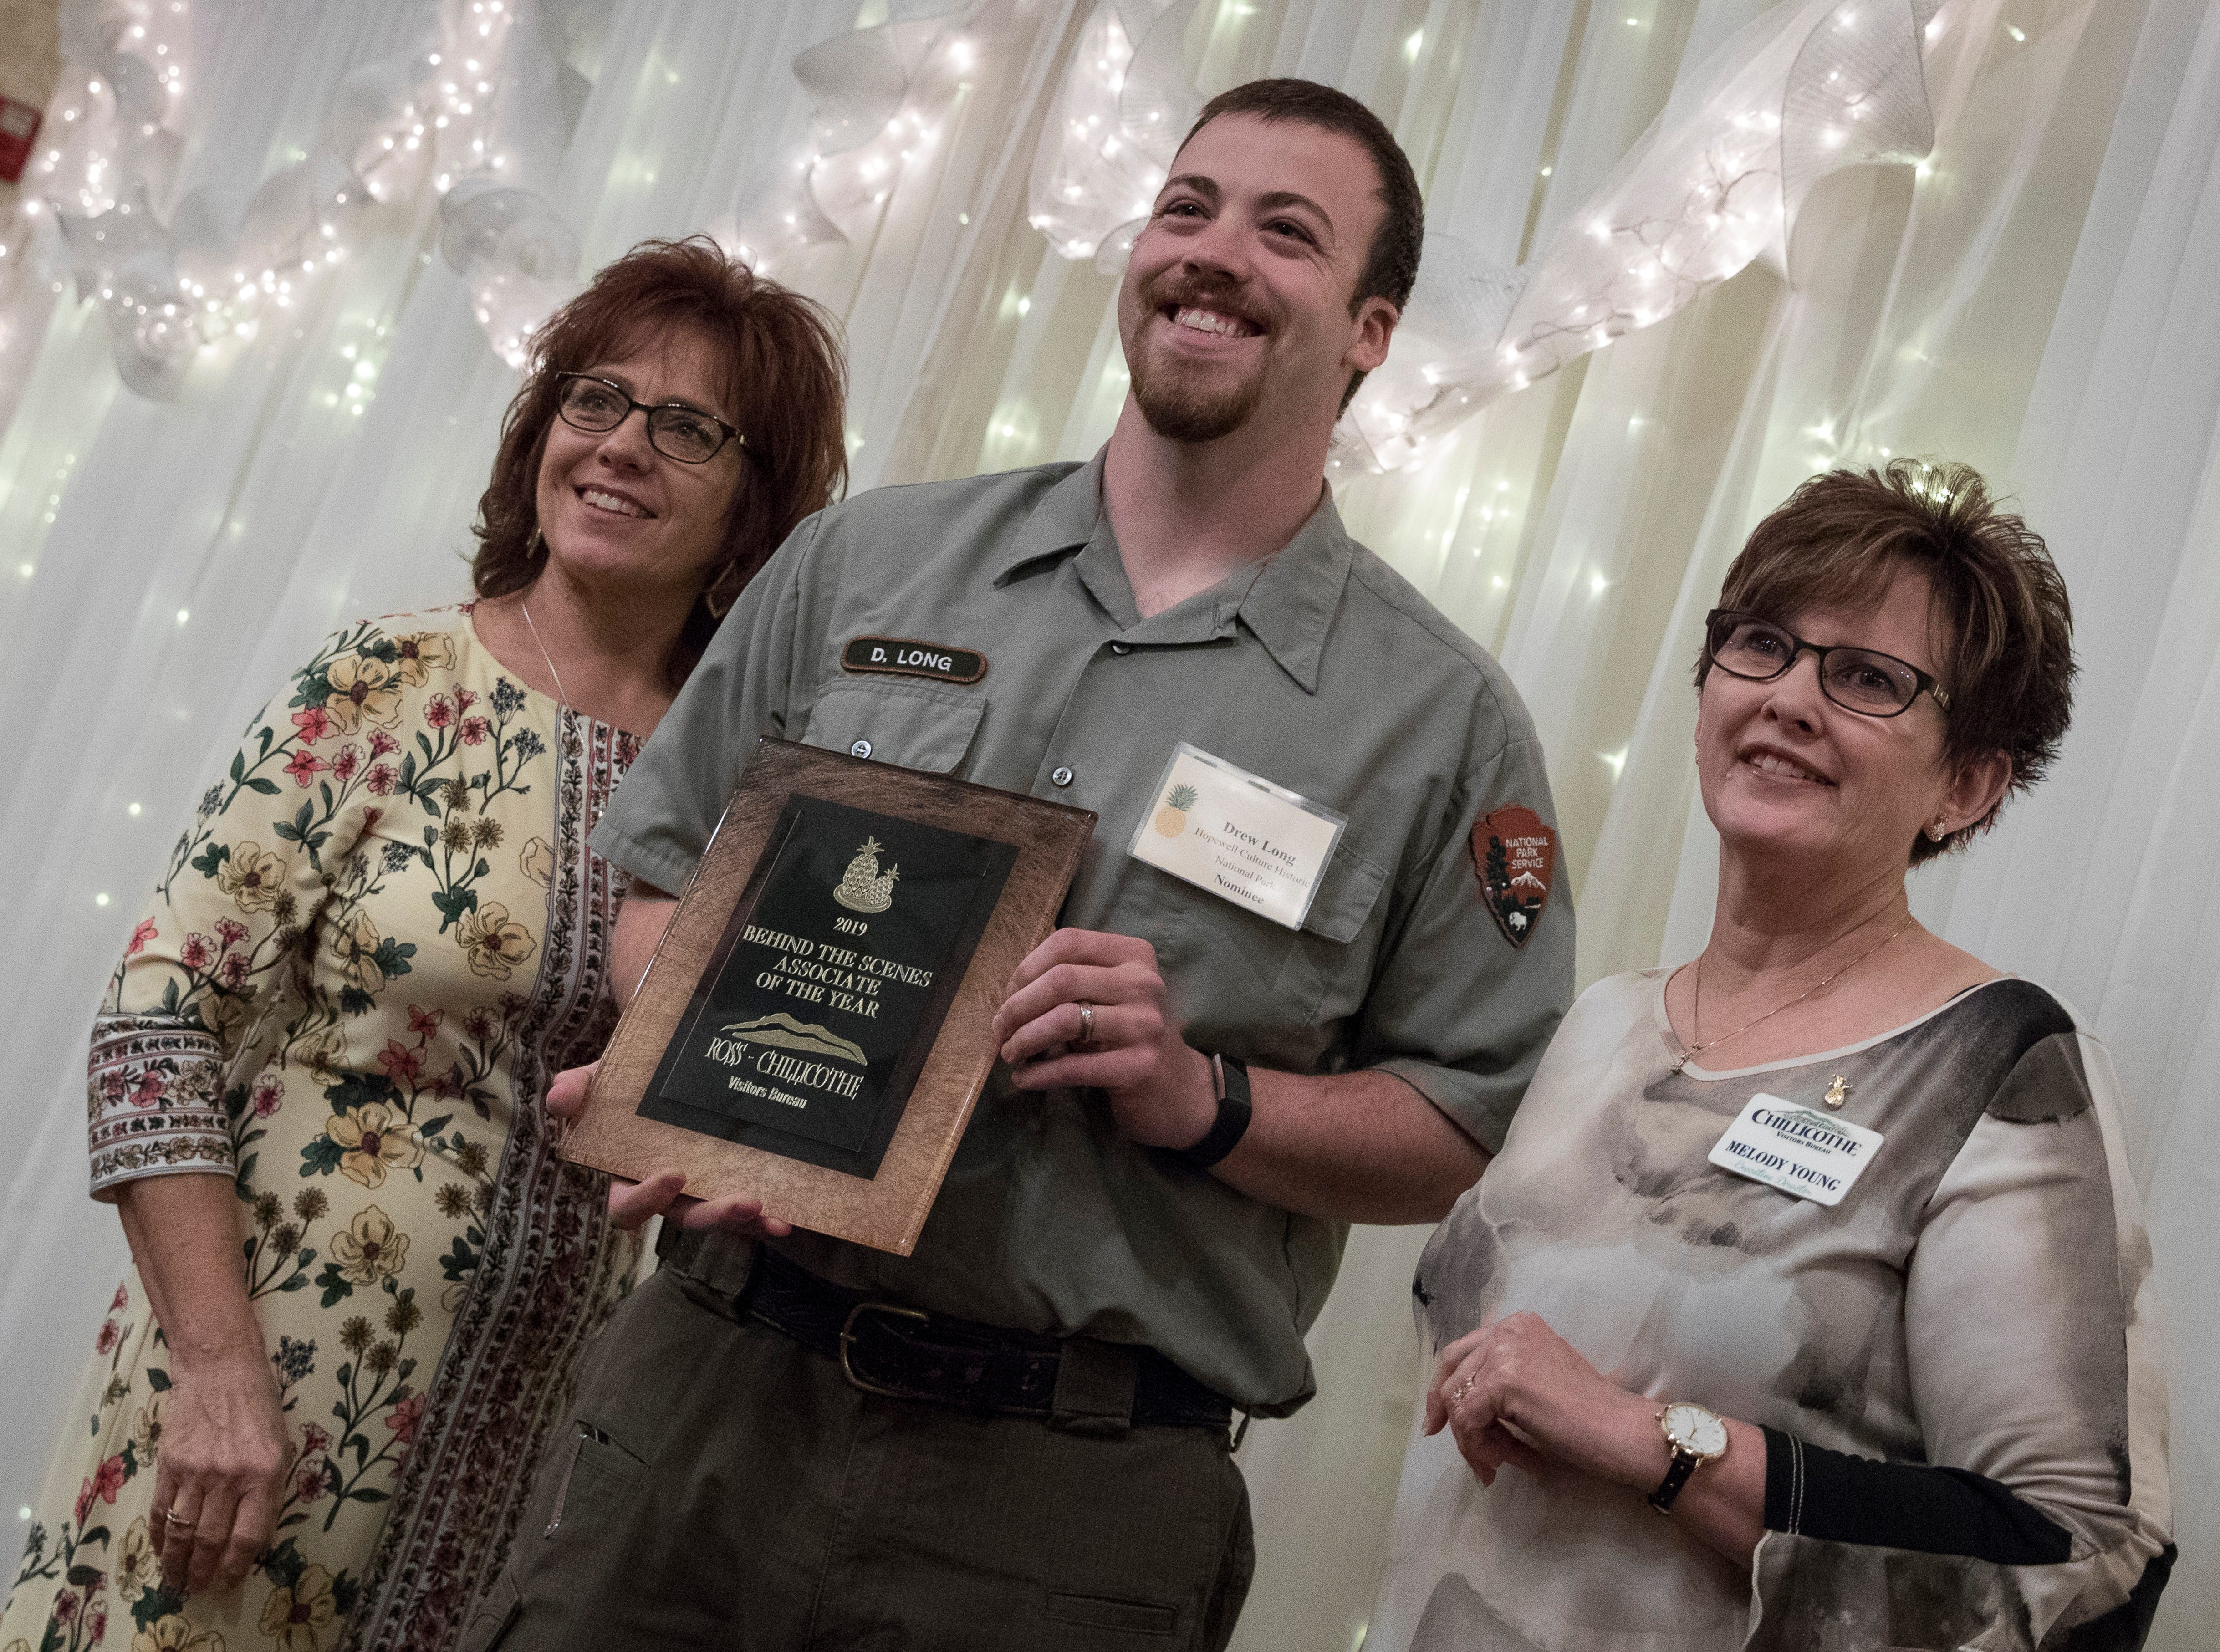 Drew Long from the Hopewell Culture Historic National Park received the 2019 Behind the Scenes Associate of the Year Award at the Christopher Conference Center in Chillicothe, Ohio, on May 6, 2019.